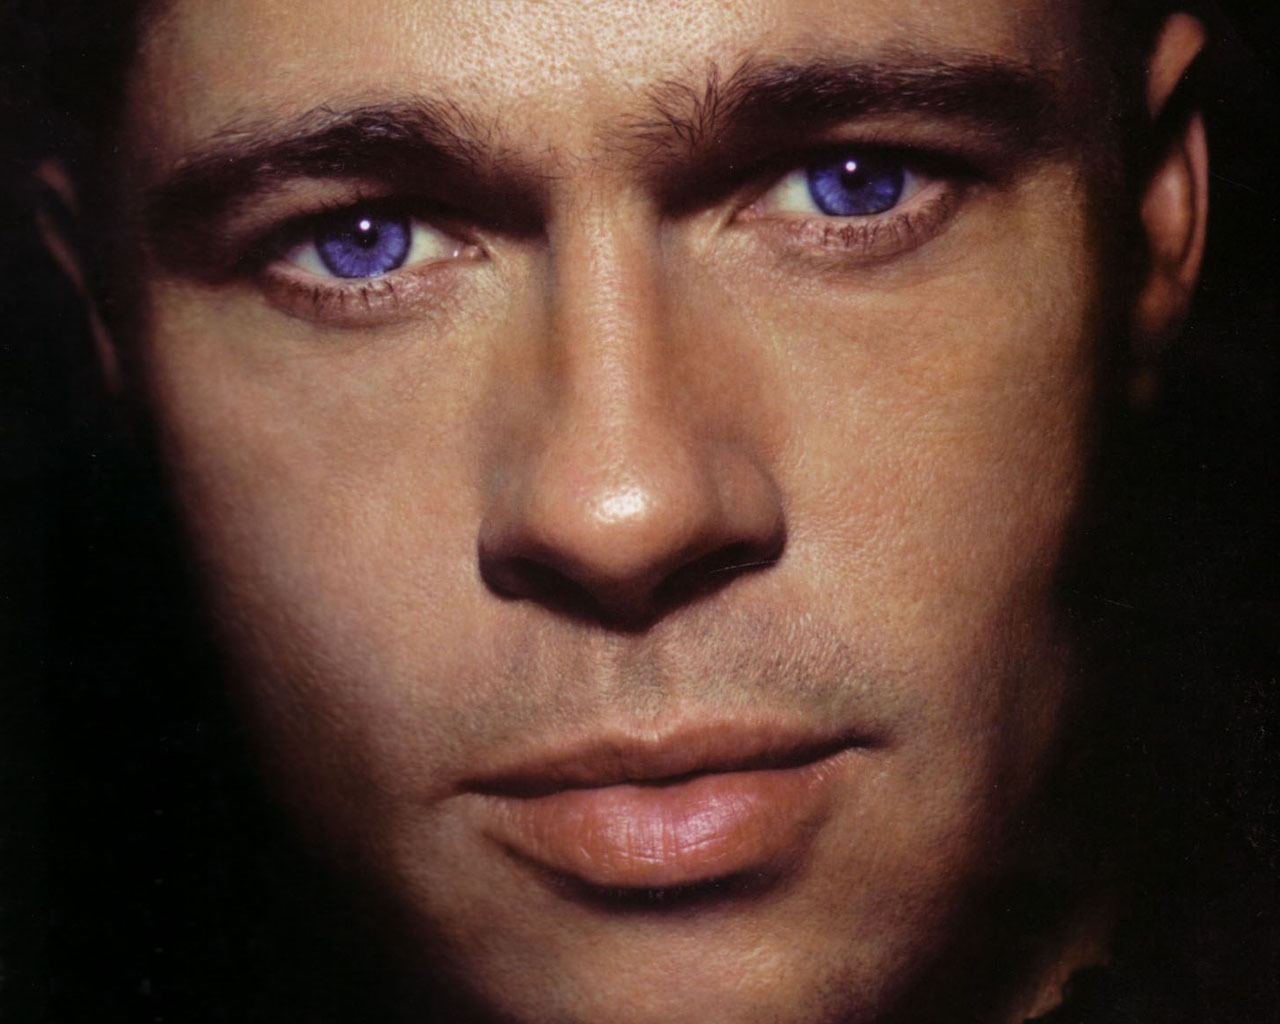 Brad pitt Wallpaper 2 With 1280 x 1024 Resolution ( 197kB )